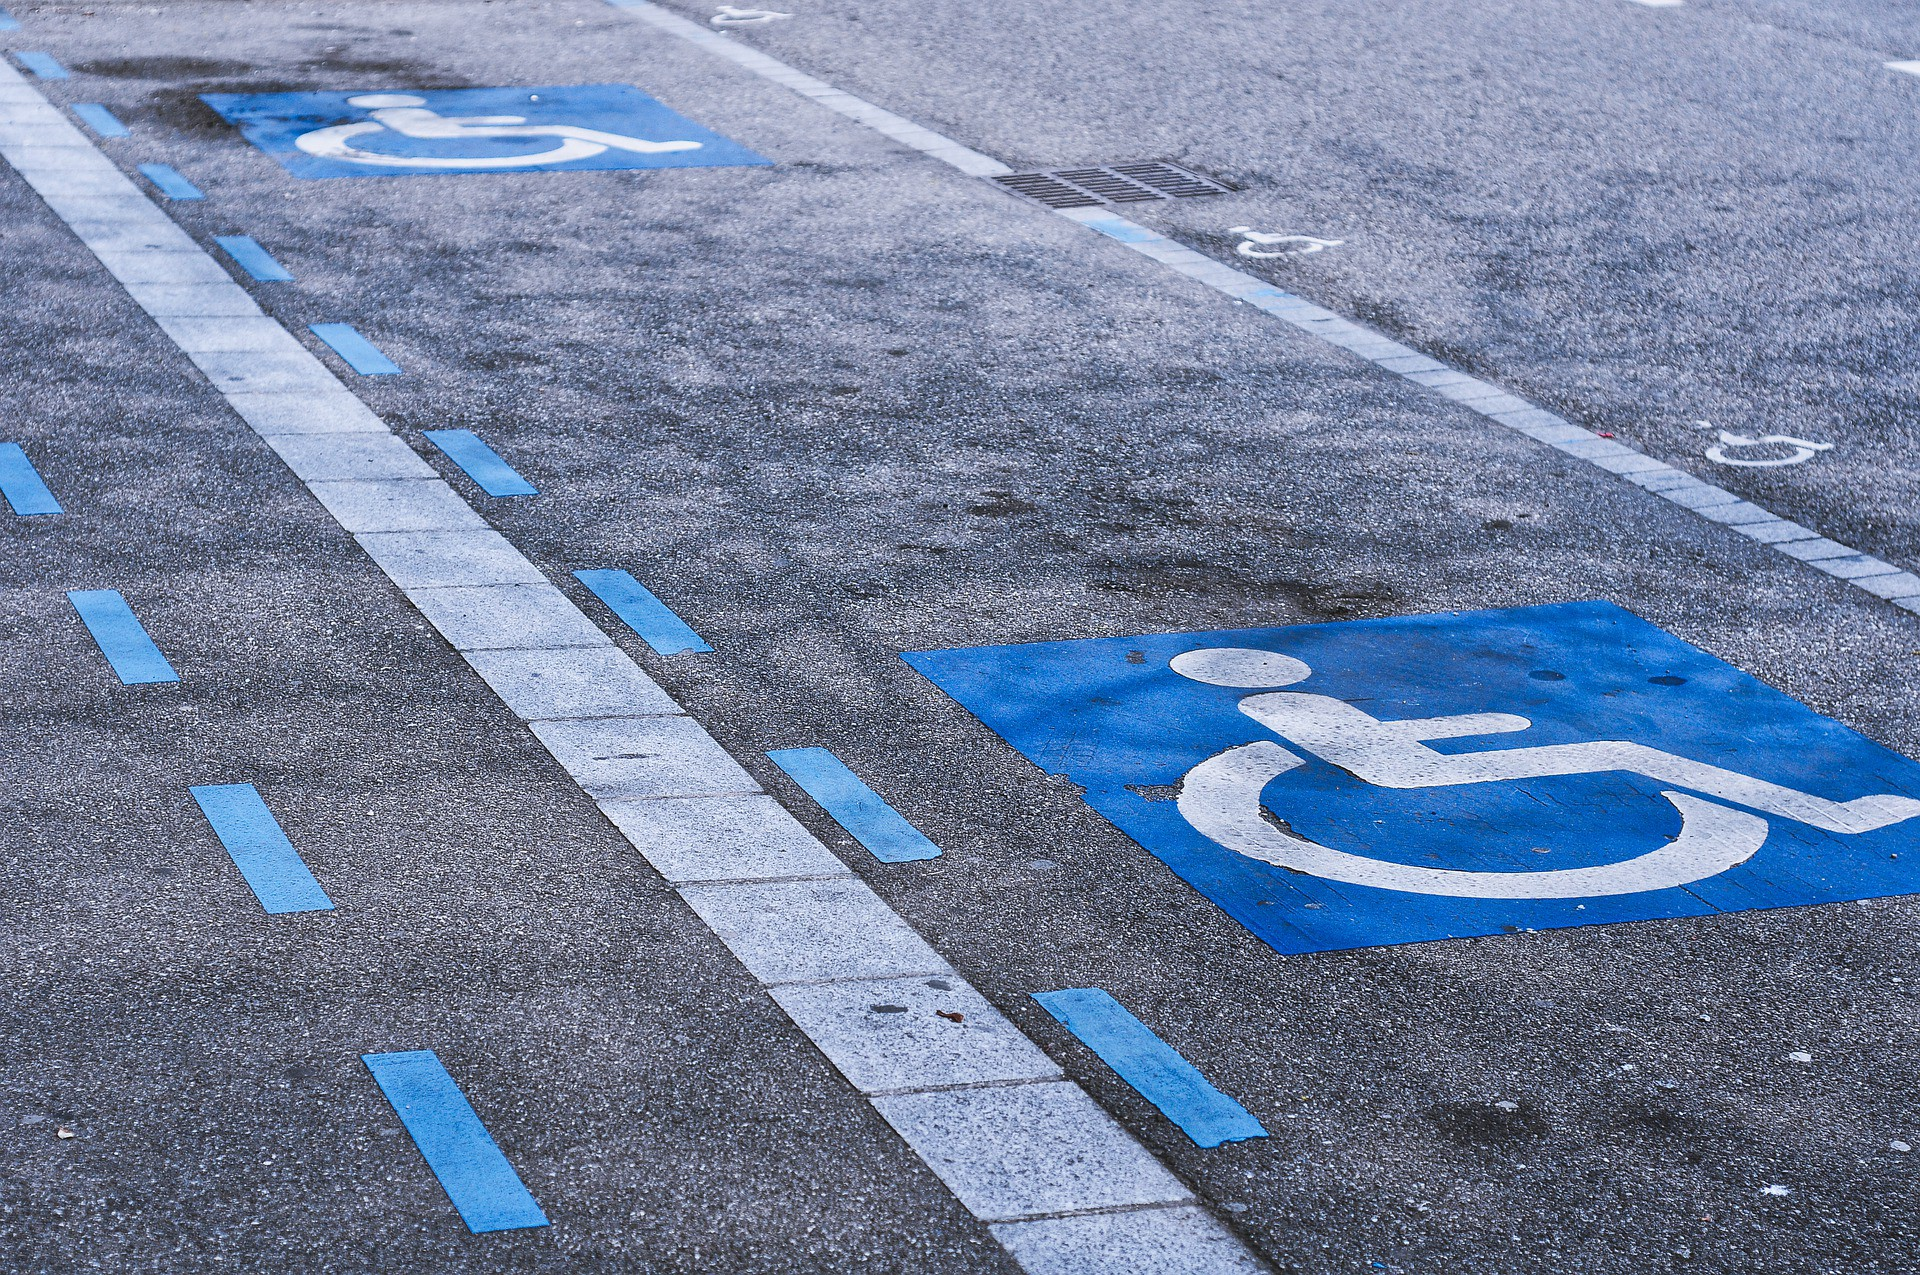 A row of handicapped parking spaces